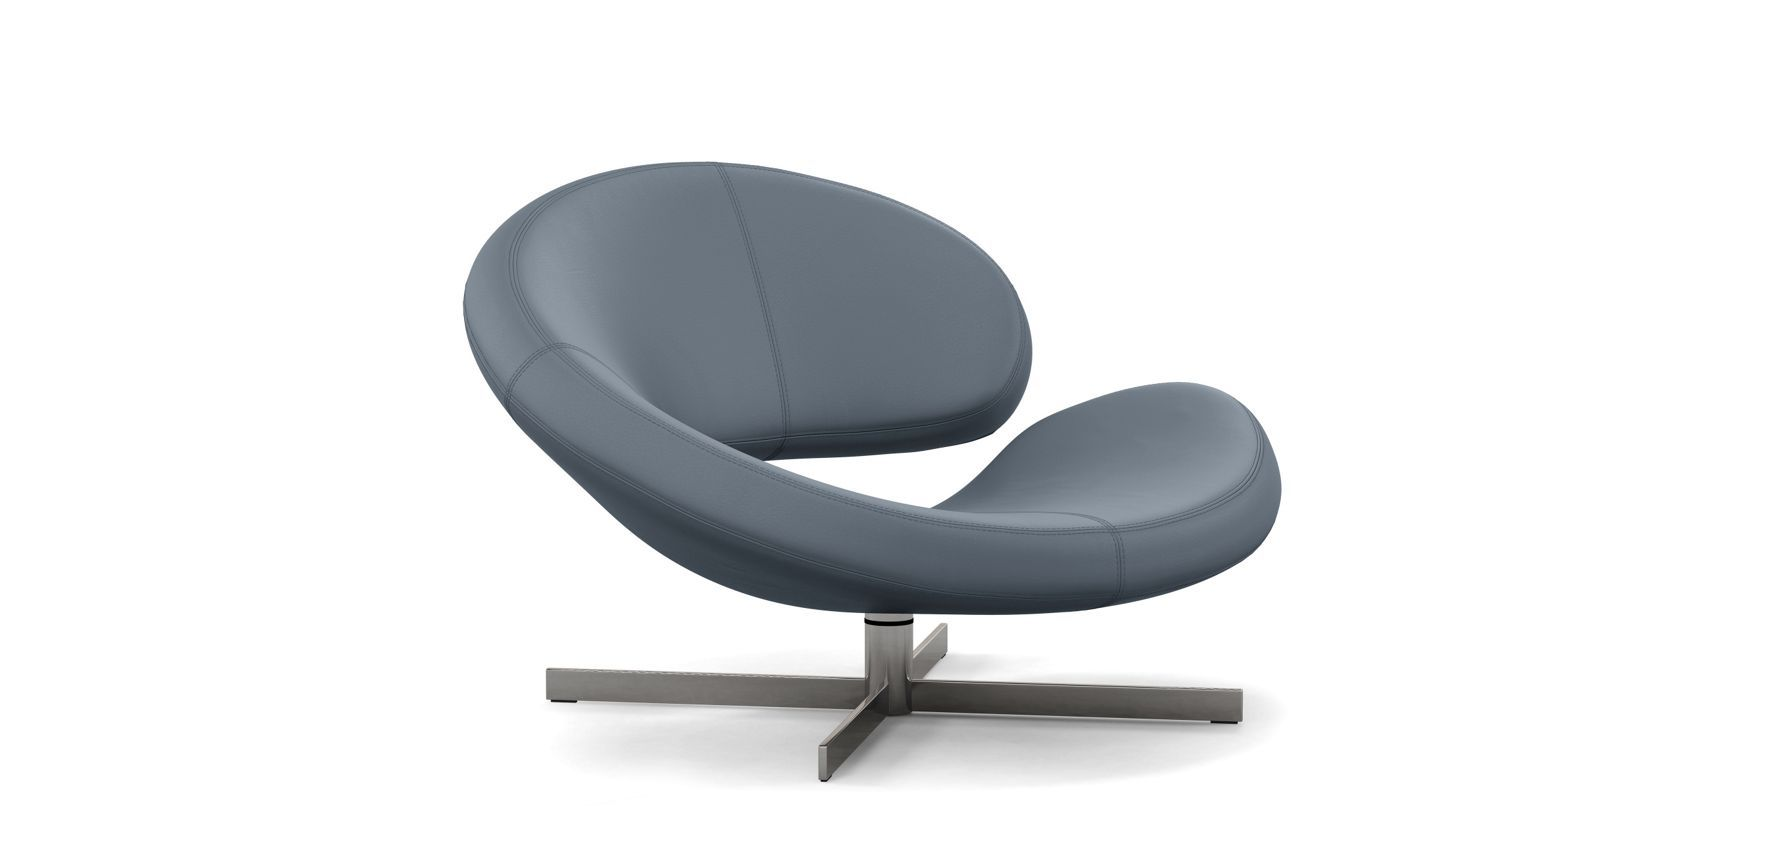 Wondrous Nuage Swivel Armchair Roche Bobois Swivel Armchair Cjindustries Chair Design For Home Cjindustriesco